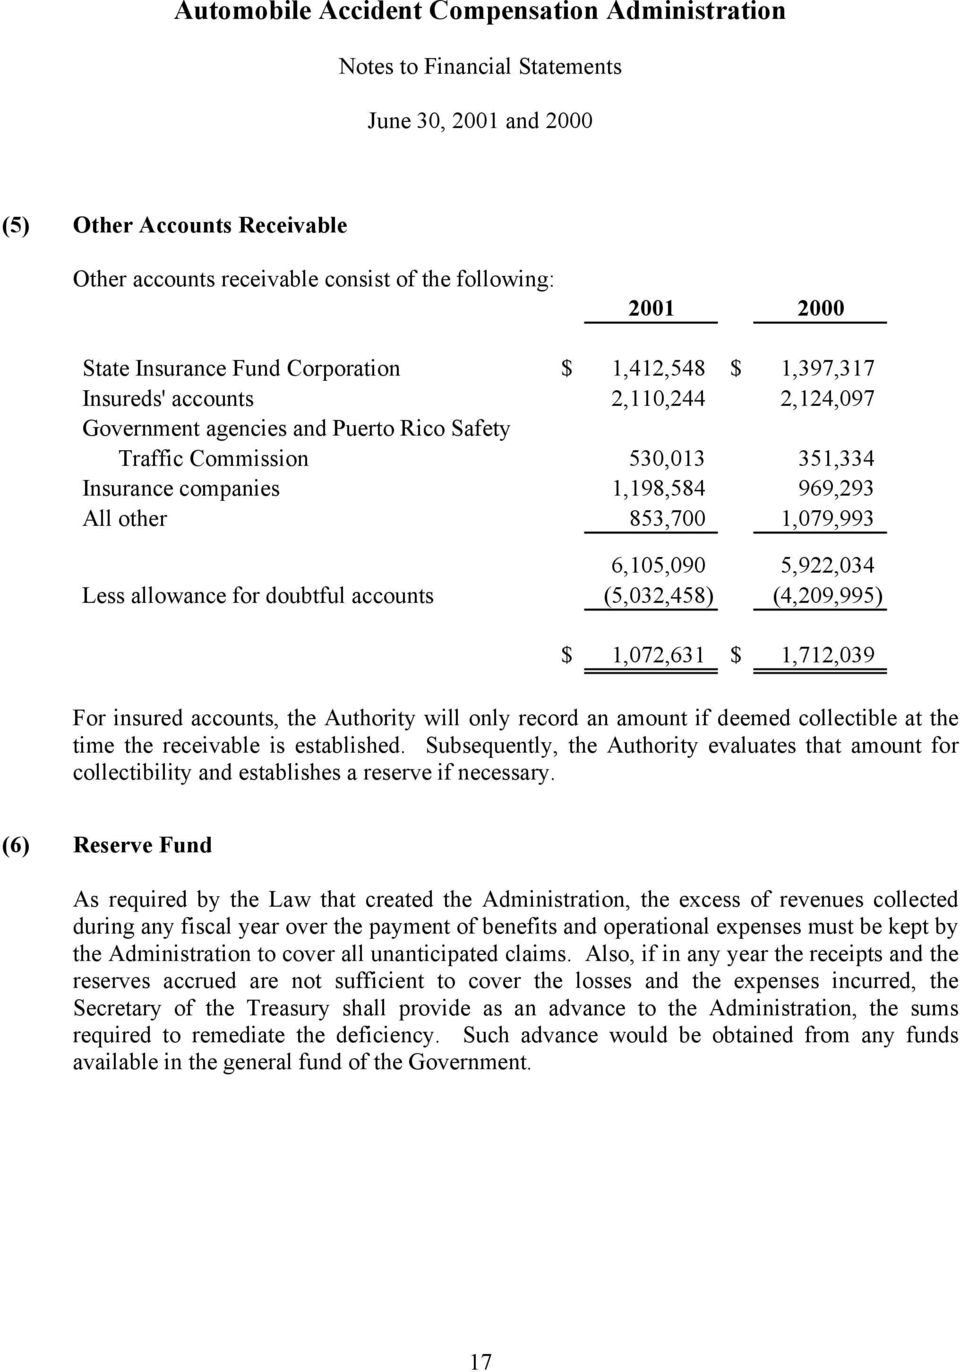 (5,032,458) (4,209,995) $ 1,072,631 $ 1,712,039 For insured accounts, the Authority will only record an amount if deemed collectible at the time the receivable is established.